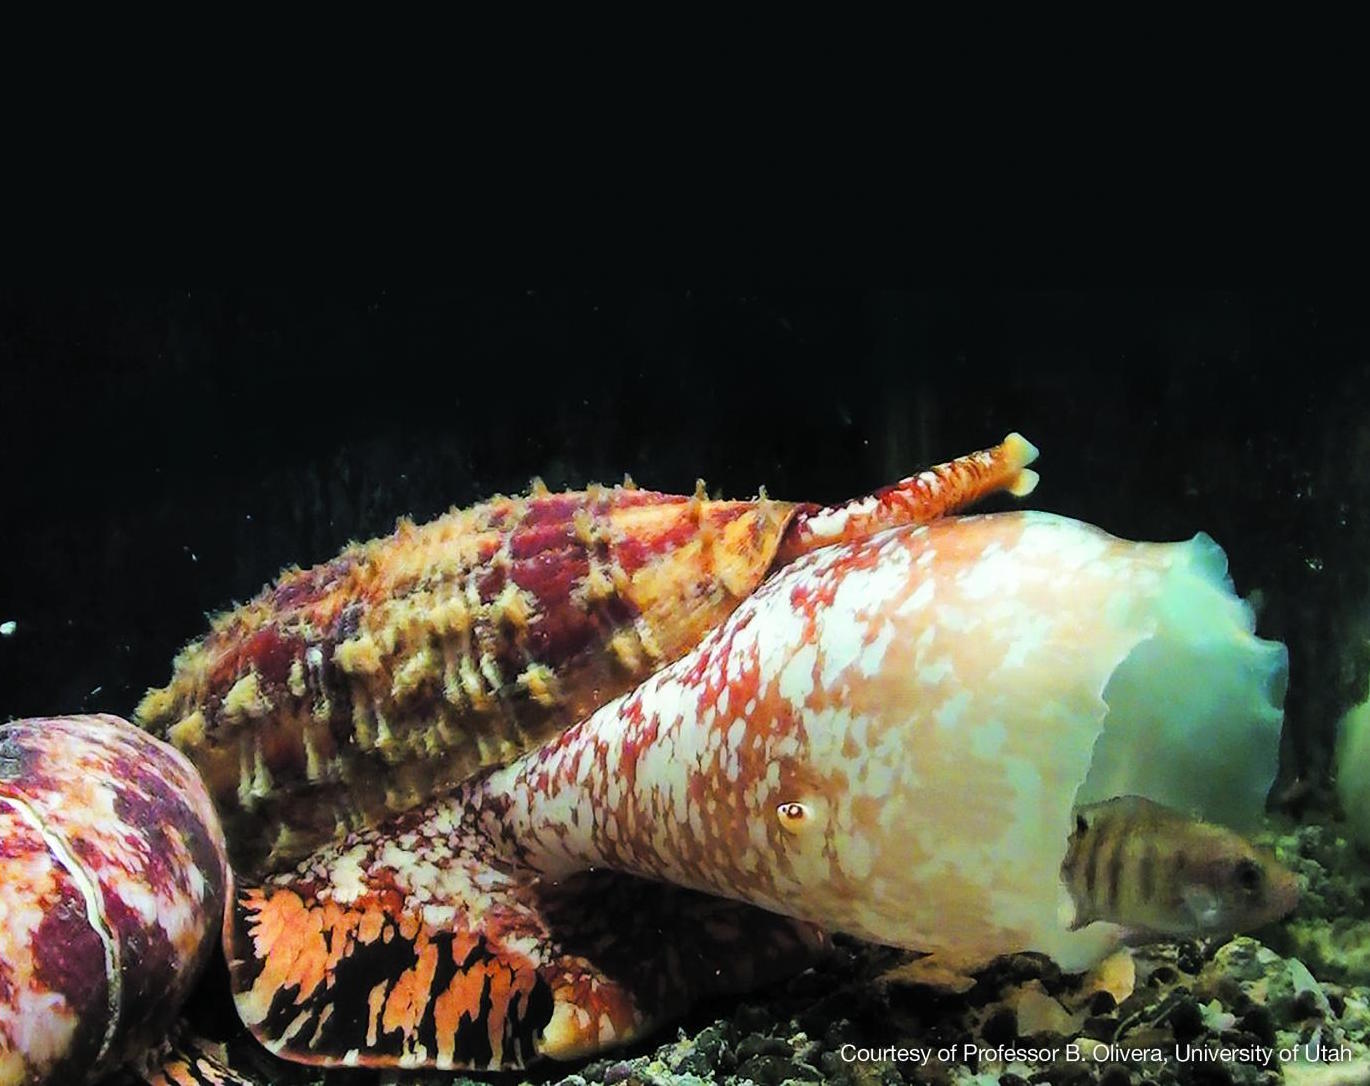 This is a Marine cone snail: conus geographus. / Credit: Professor B. Olivera, University of Utah.